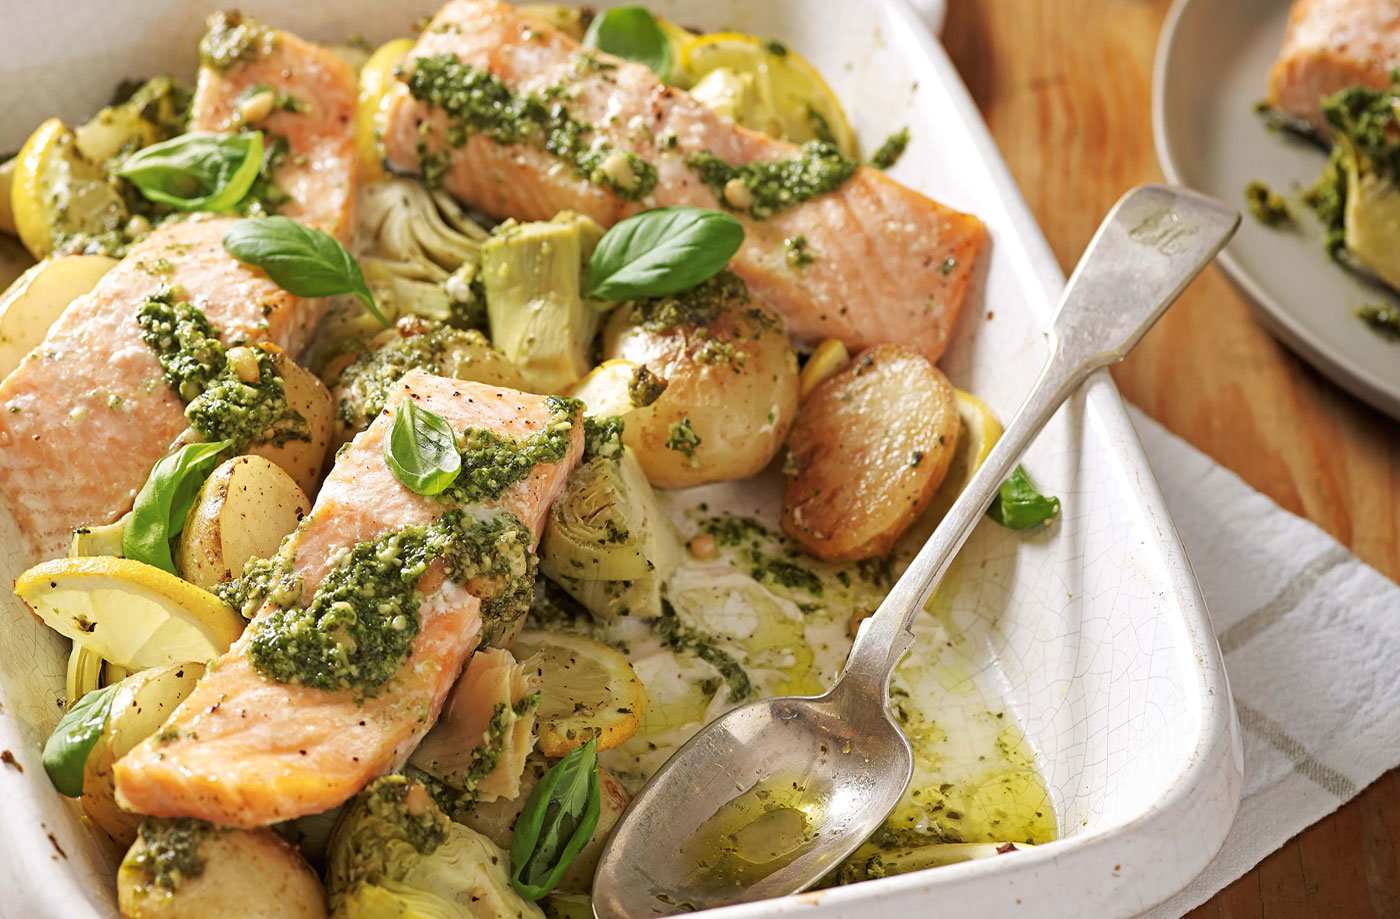 Salmon, Artichoke And Potato Pesto Traybake Recipe